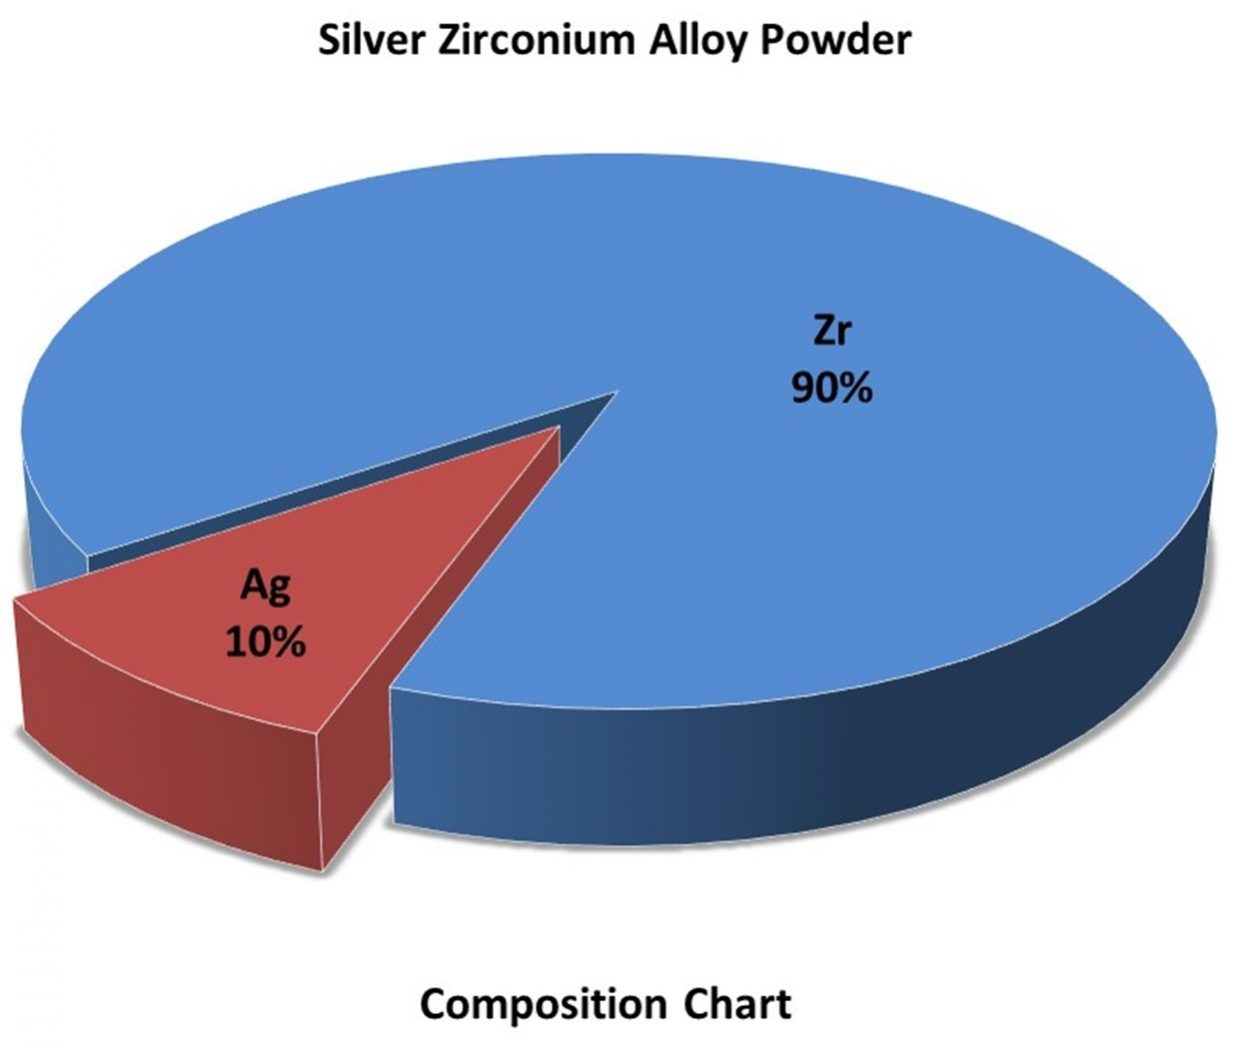 Composition Chart – Ag:Zr Alloy Powder